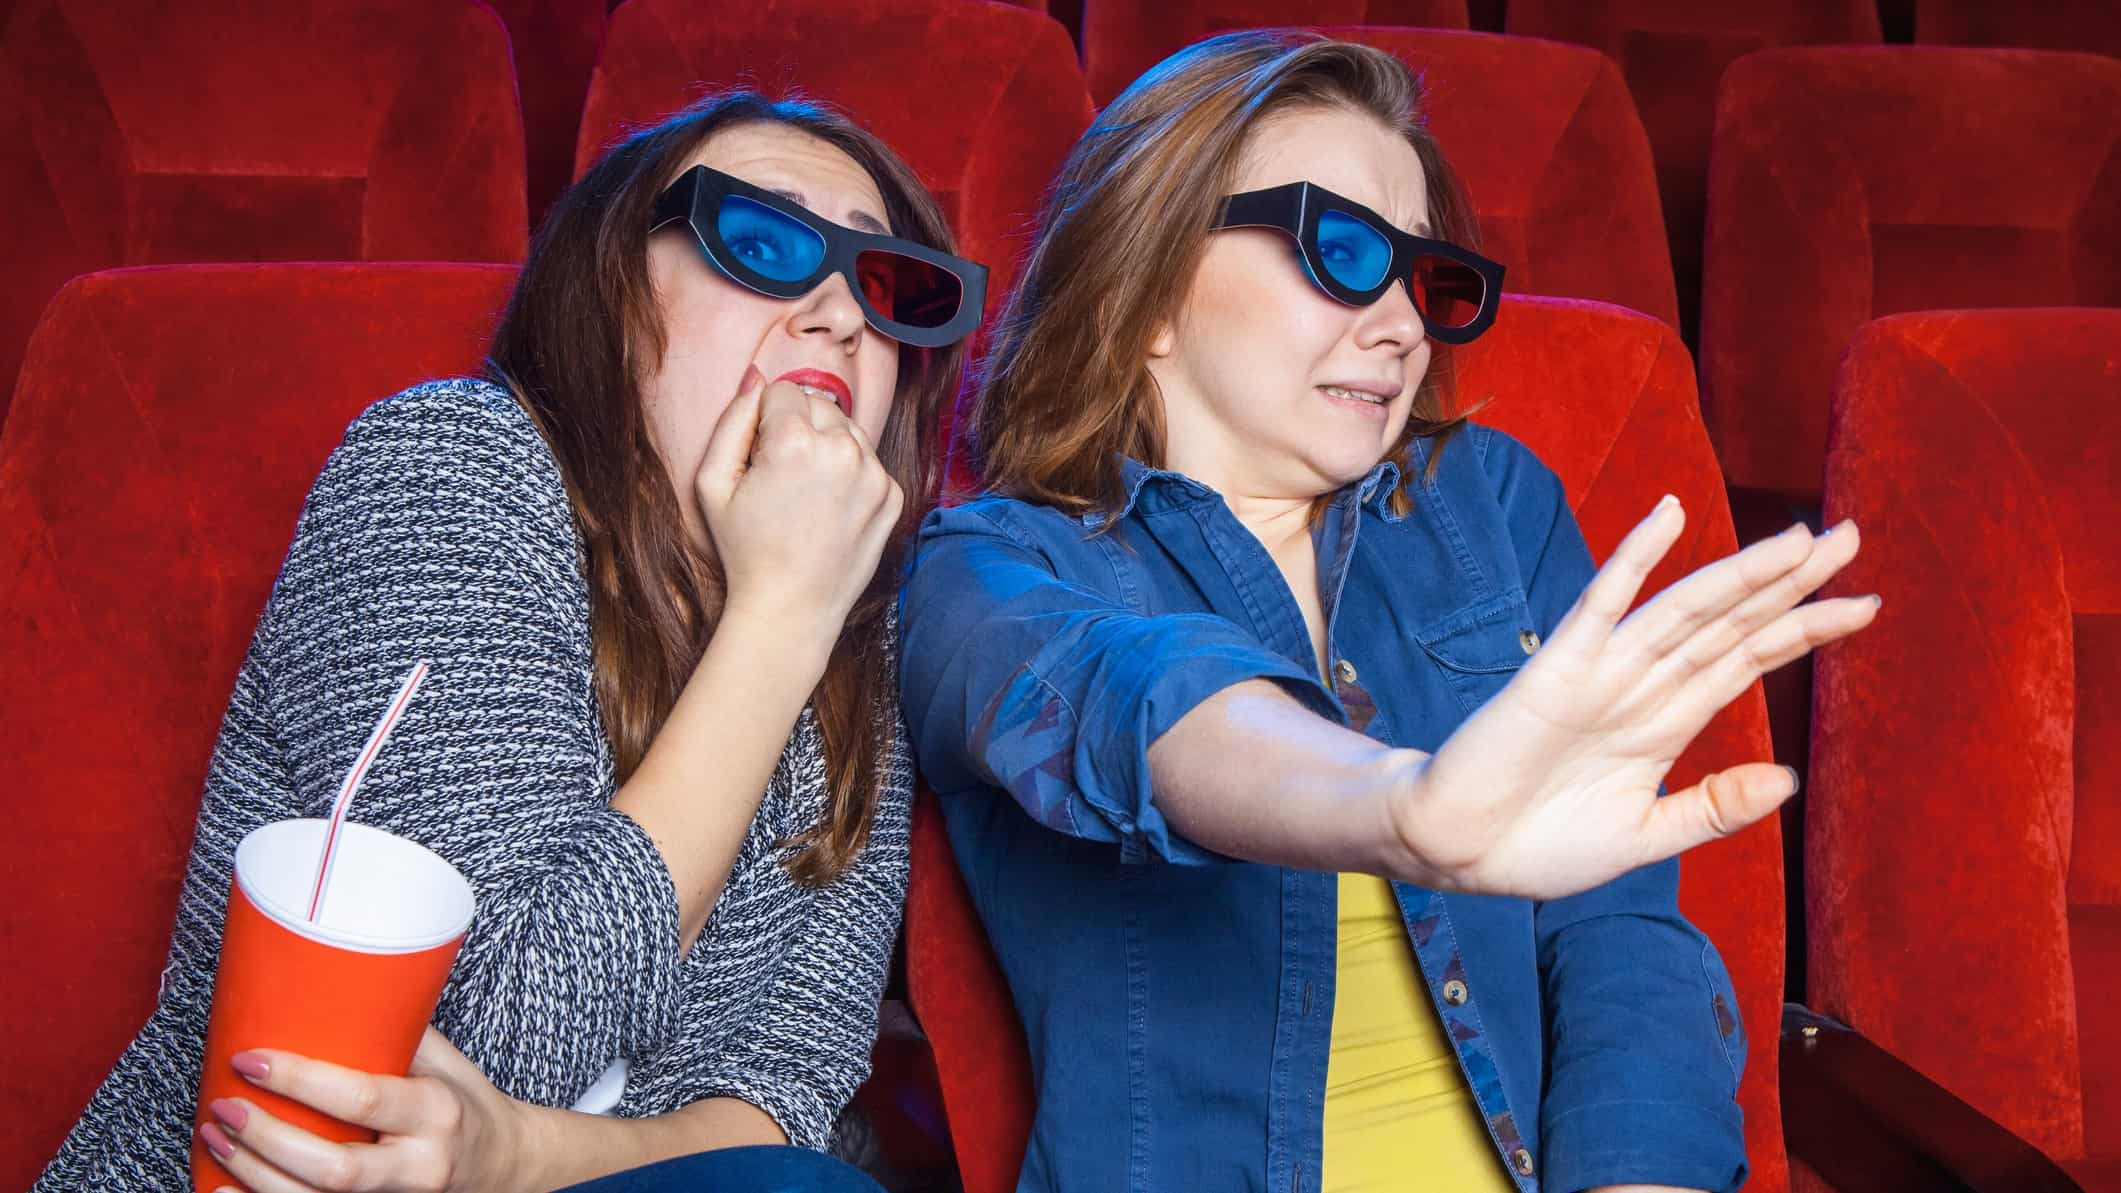 village share price lower represented by two women in cinema looking scared